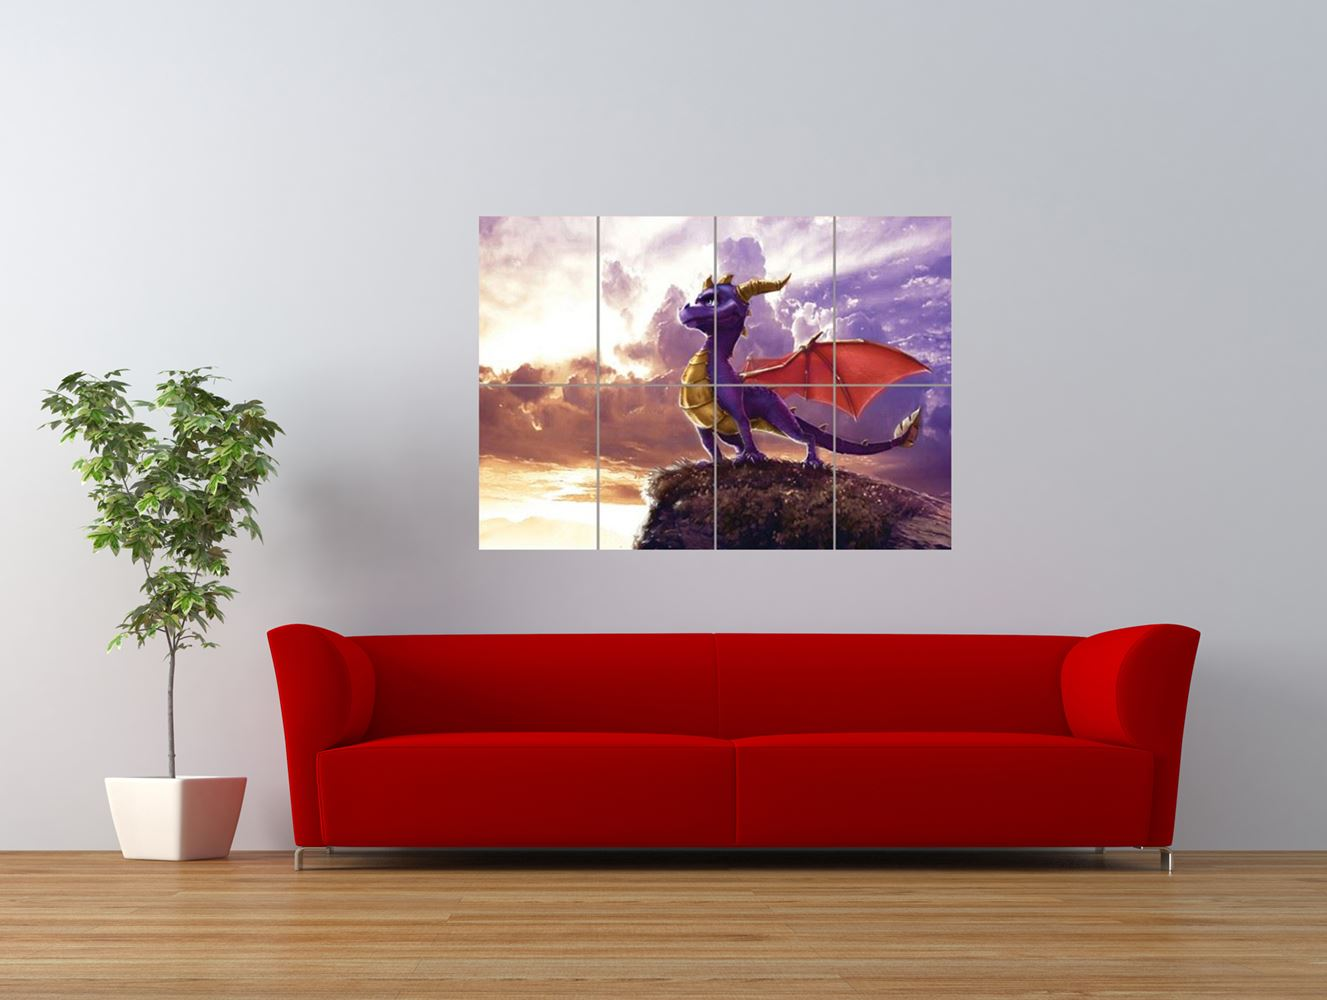 spyro the dragon xbox video game giant art print panel poster nor0048 ebay. Black Bedroom Furniture Sets. Home Design Ideas